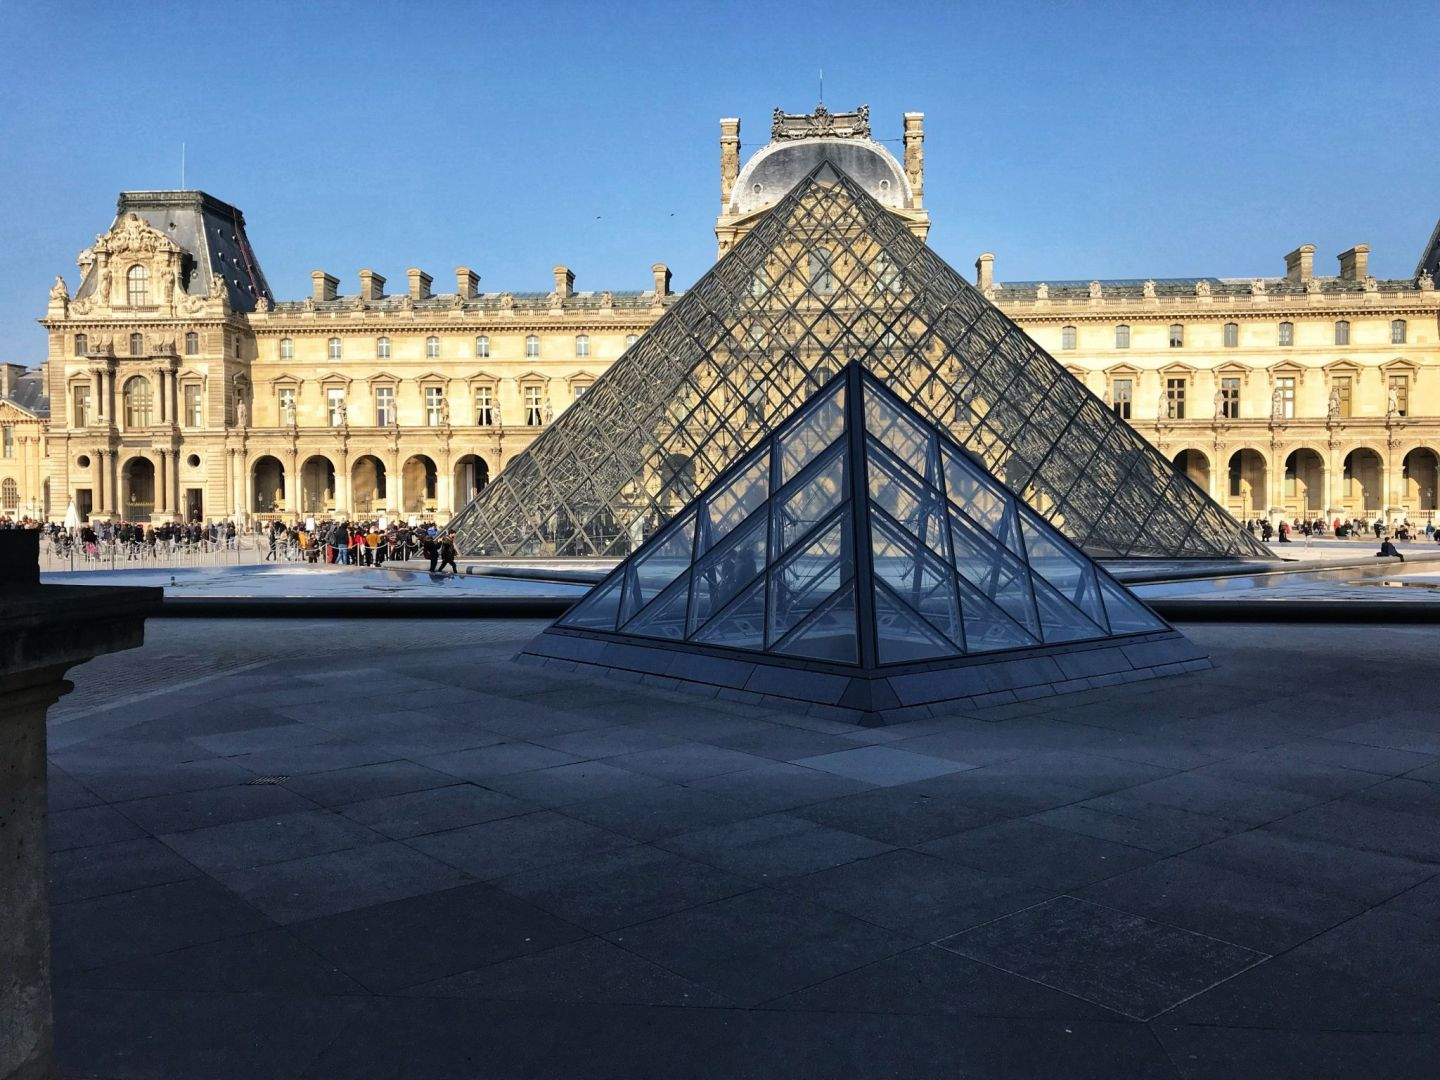 The Pyramids of The Louvre Paris